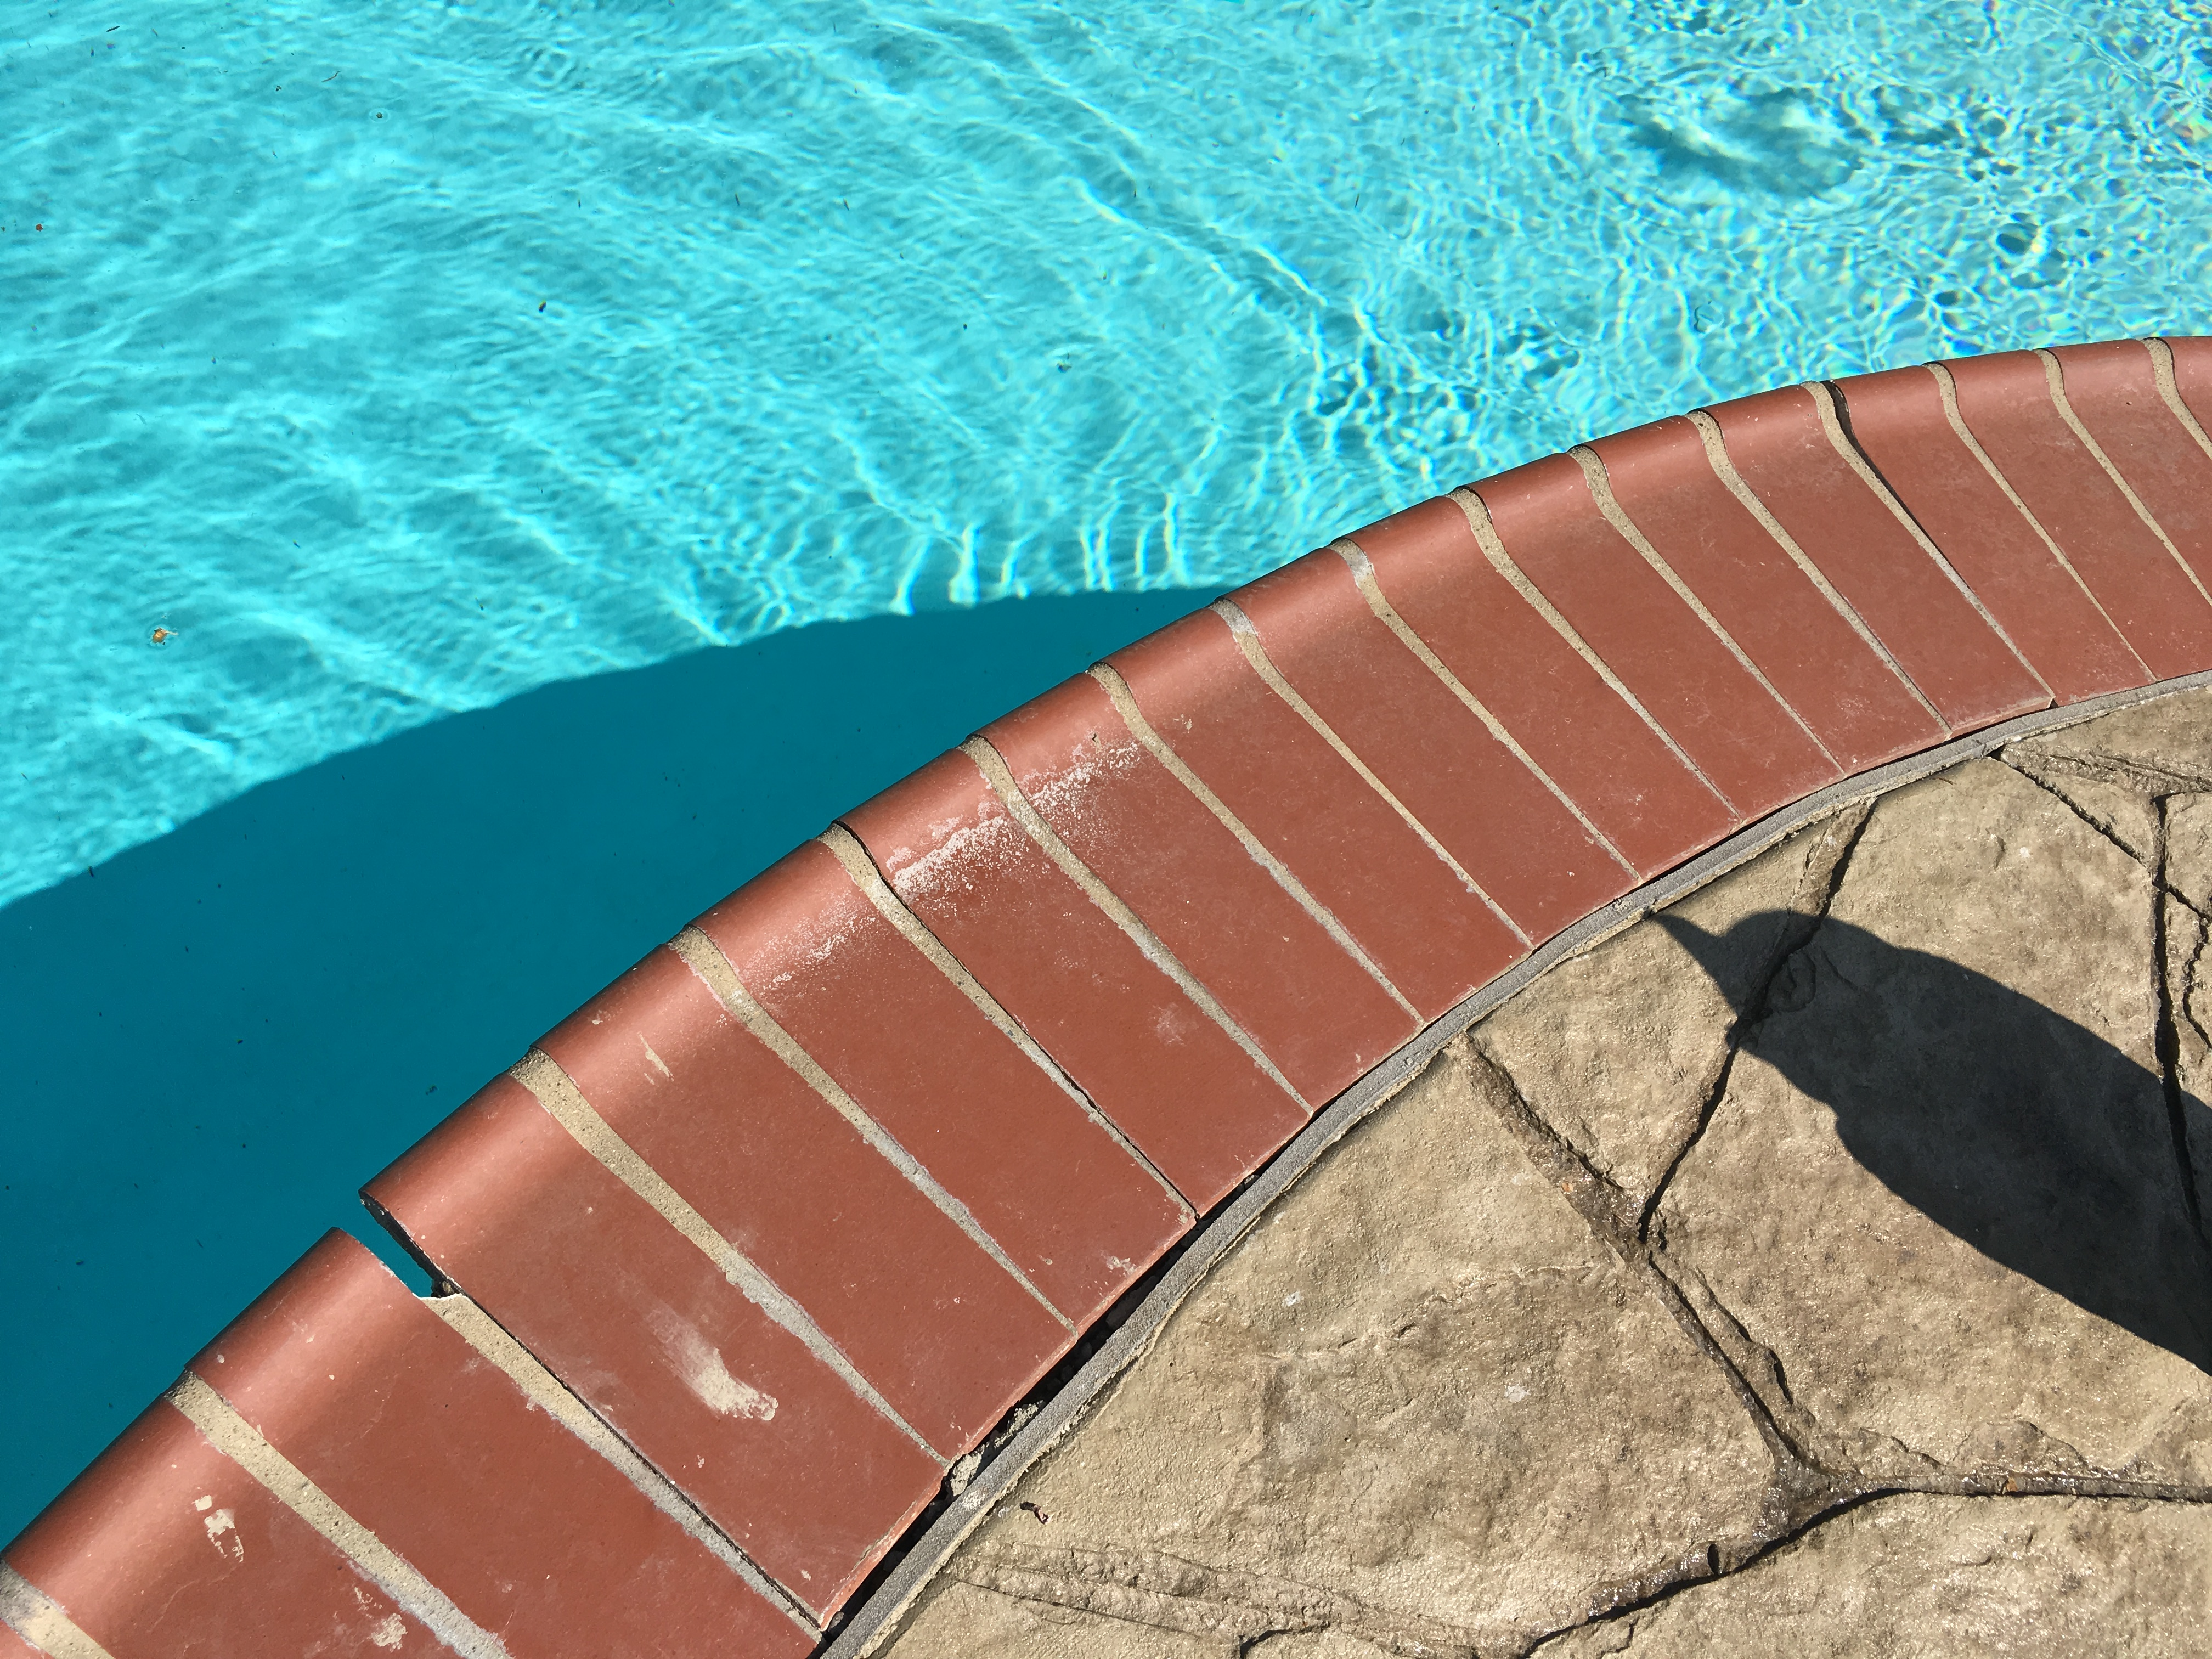 Expansion Joint Caulk On A Swimming Pool Why